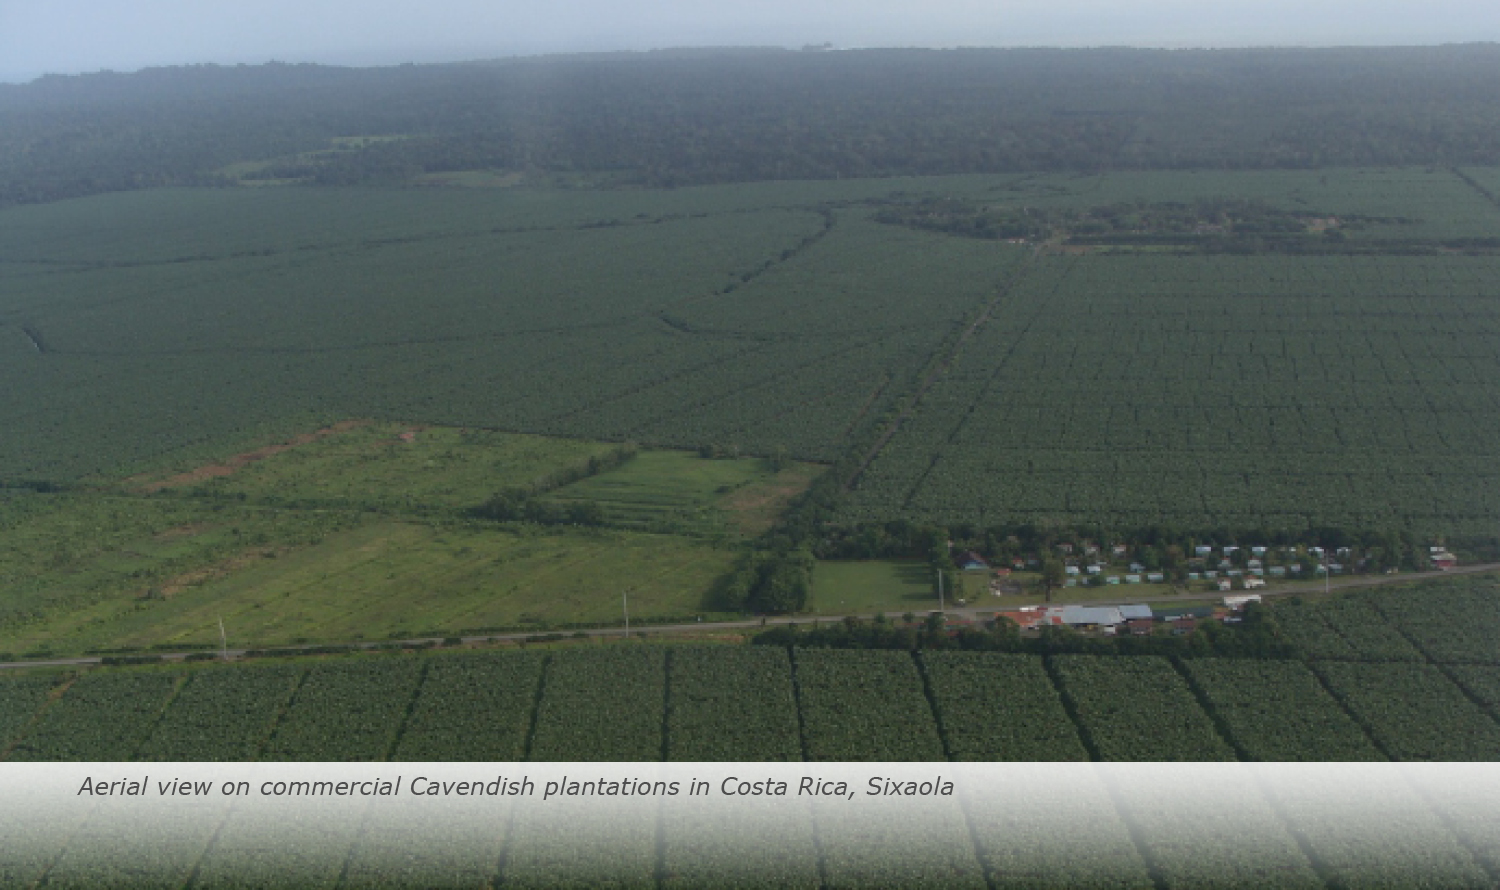 Info & Facts: Aerial view on commercial Cavendish plantations in Costa Rica, Sixaola